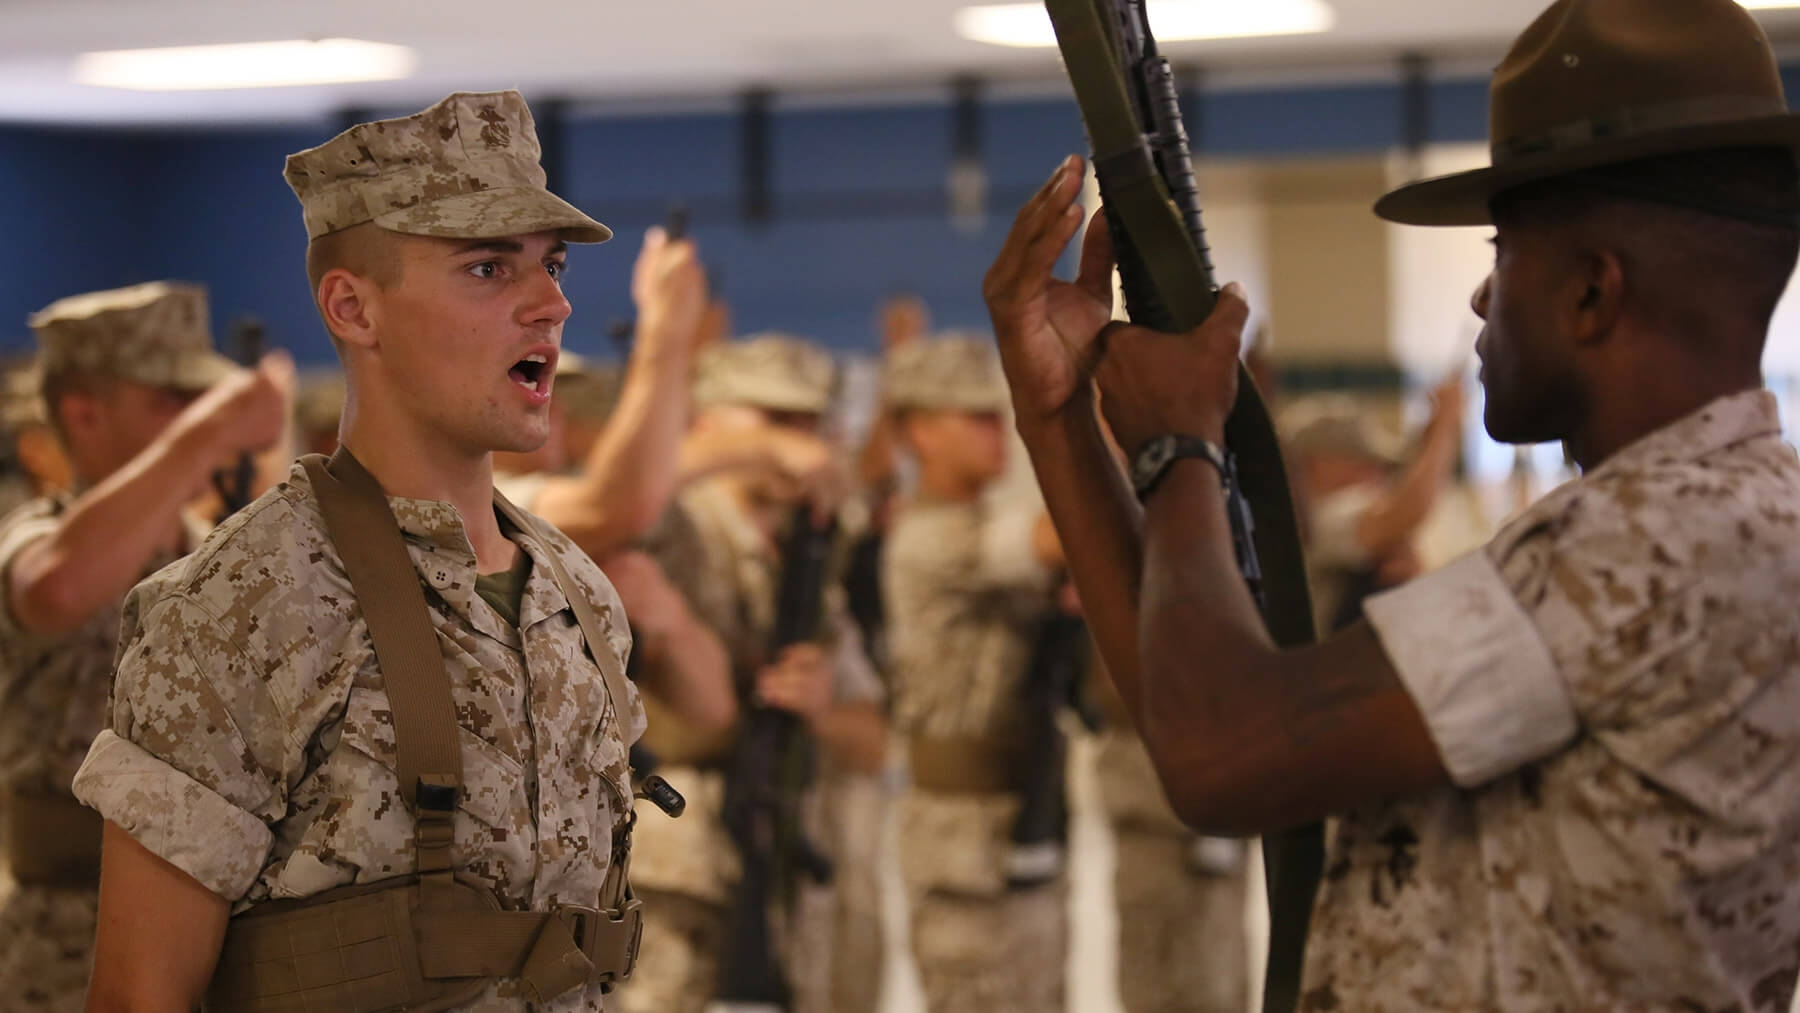 Recruits are trained to use and respect their rifles.